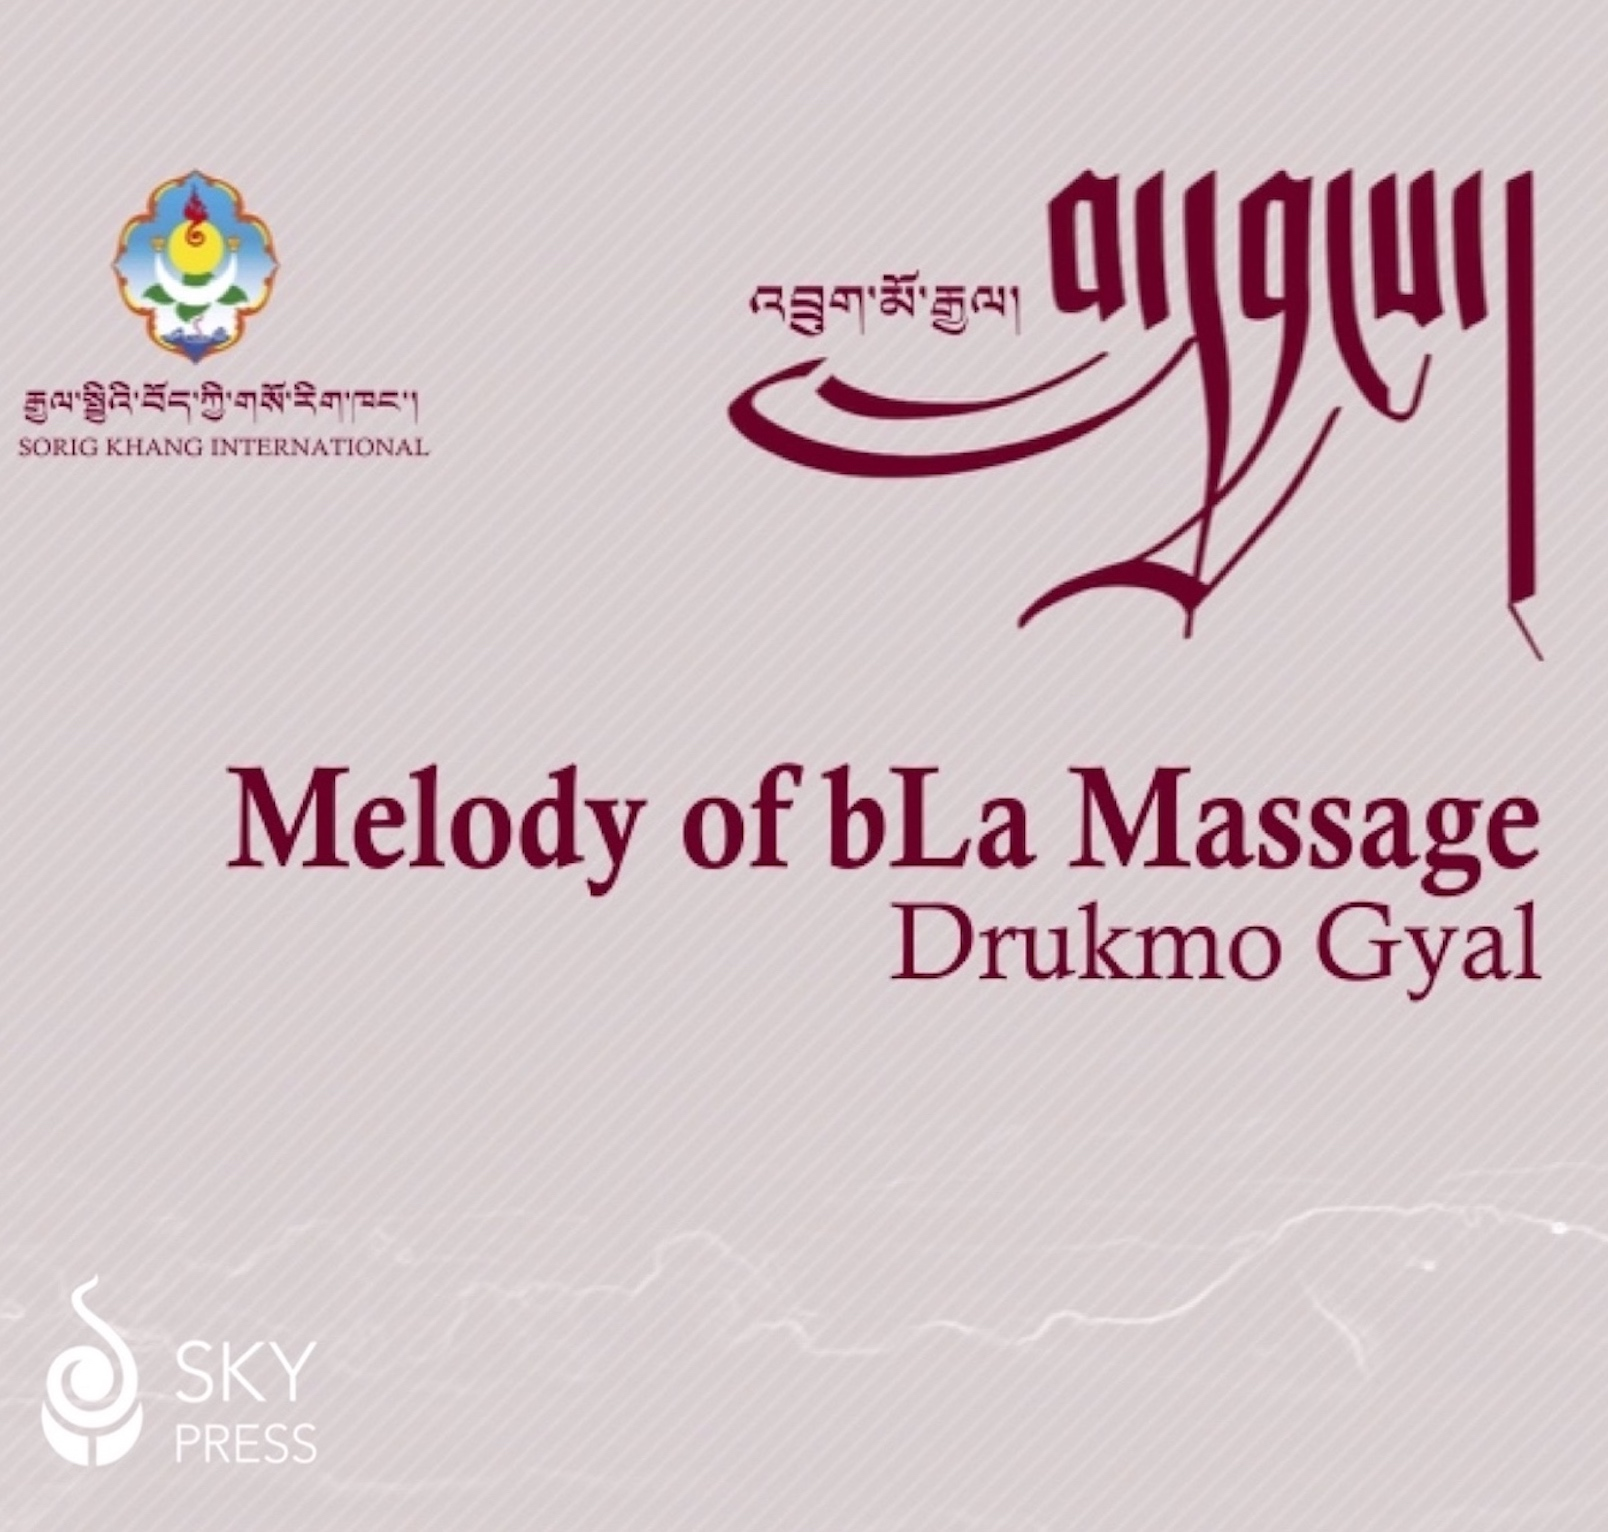 Melody of La Massage - Drukmo Gyal chanting the seed syllables of Tibetan bLa (Tibetan: བླ།) massage: a subtle energetic treatment from the Tibetan Medical tradition used to restore 'la', the vital protective energy closely connected with consciousness.$10